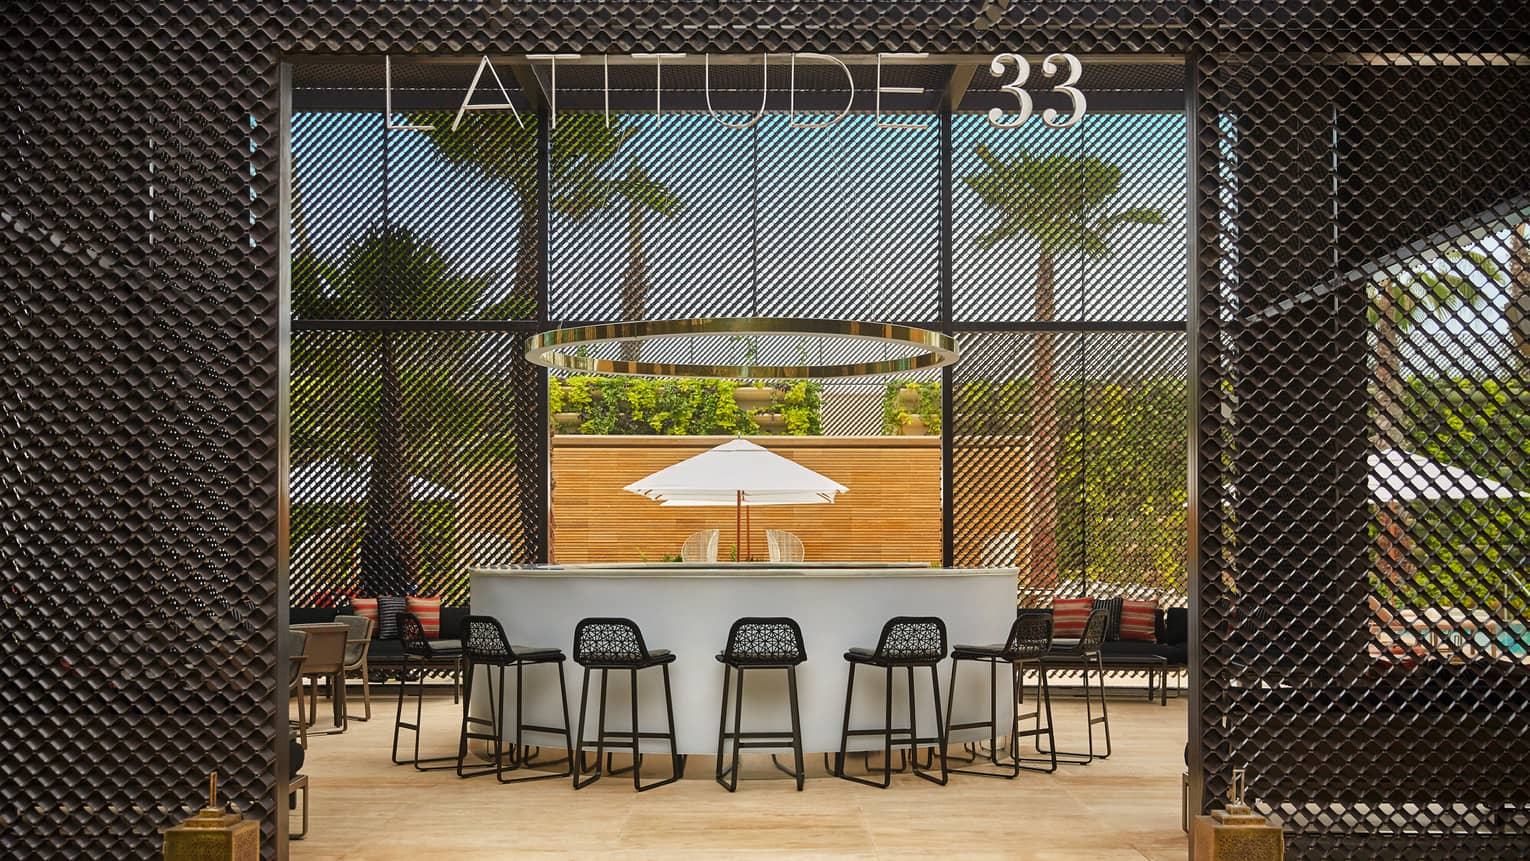 Latitude 33 bar entrance, white bar with black bar chairs, palm trees outside